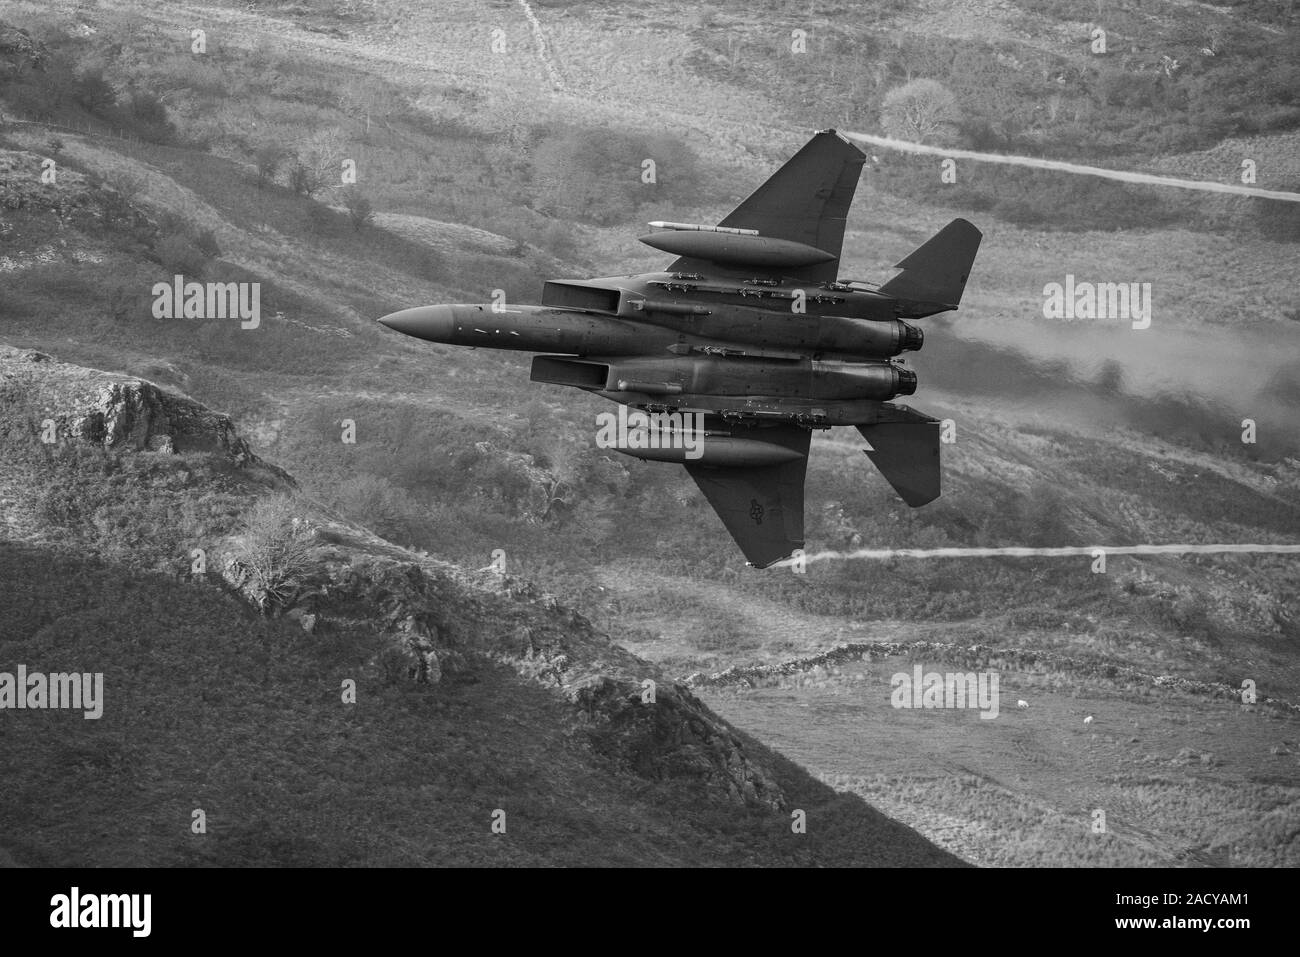 F-15 Eagle, USAF Mc Donnell Douglas low-level fighter jet flying from Valley Anglesey through the Mach Loop in Cadair Idris Wales Stock Photo